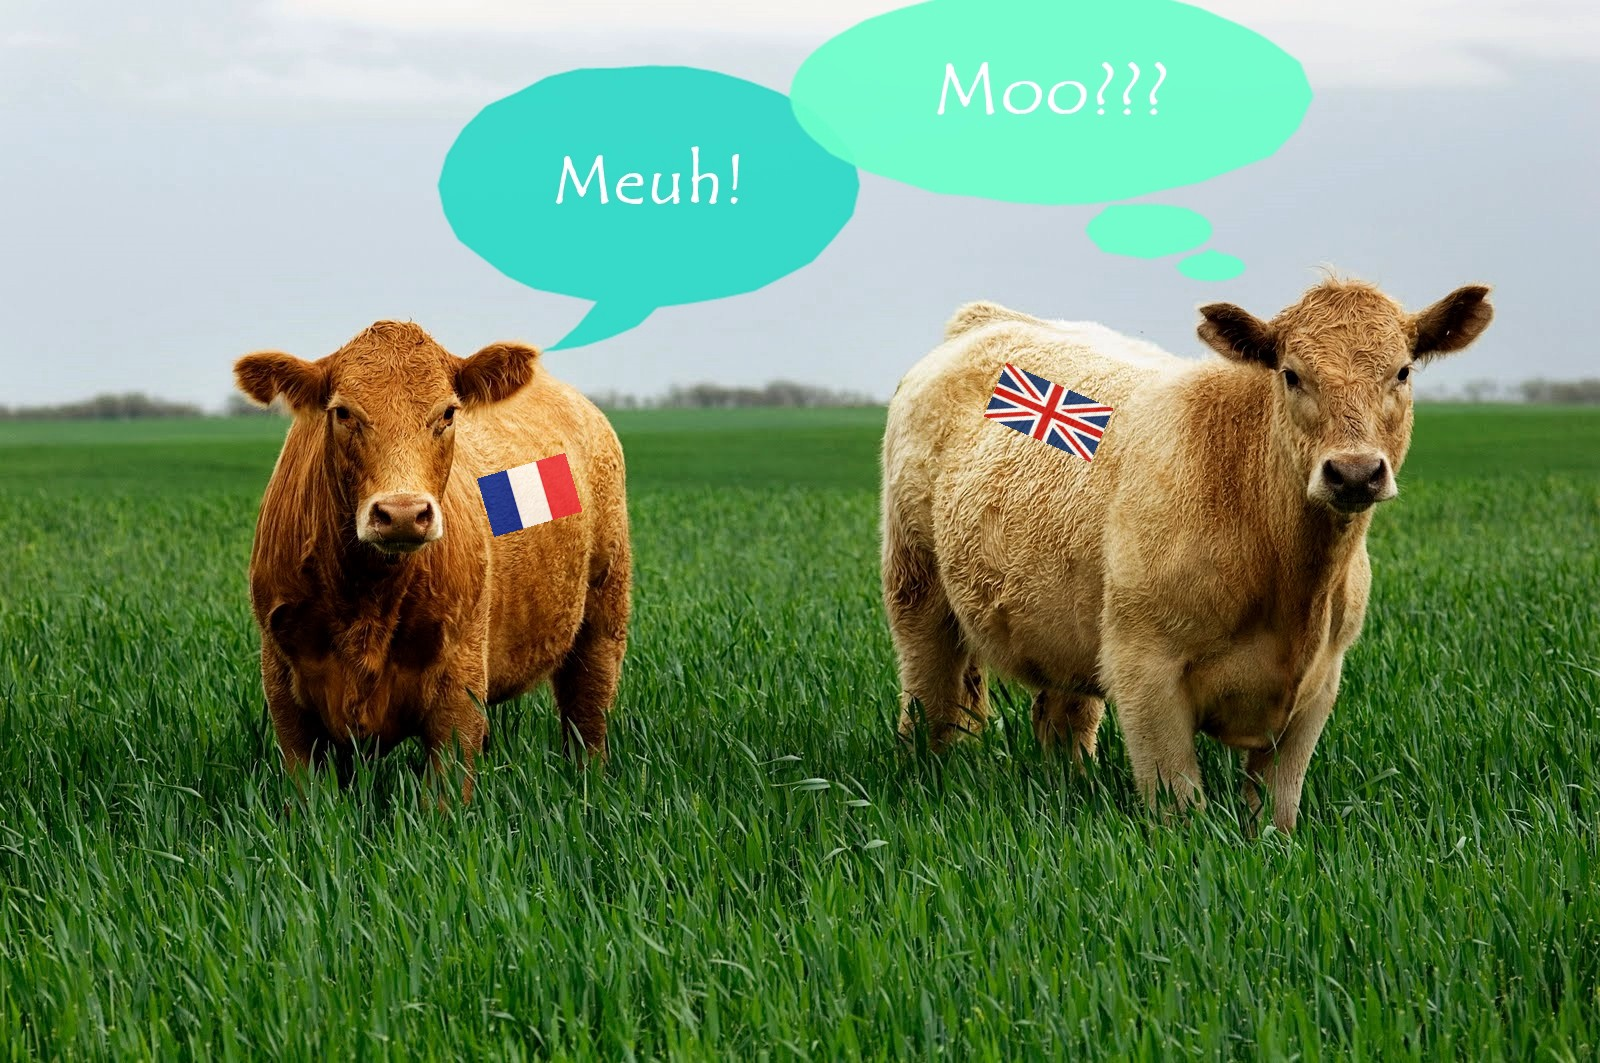 Do Cows go Meuh or Moo? Sound and Meaning in the English